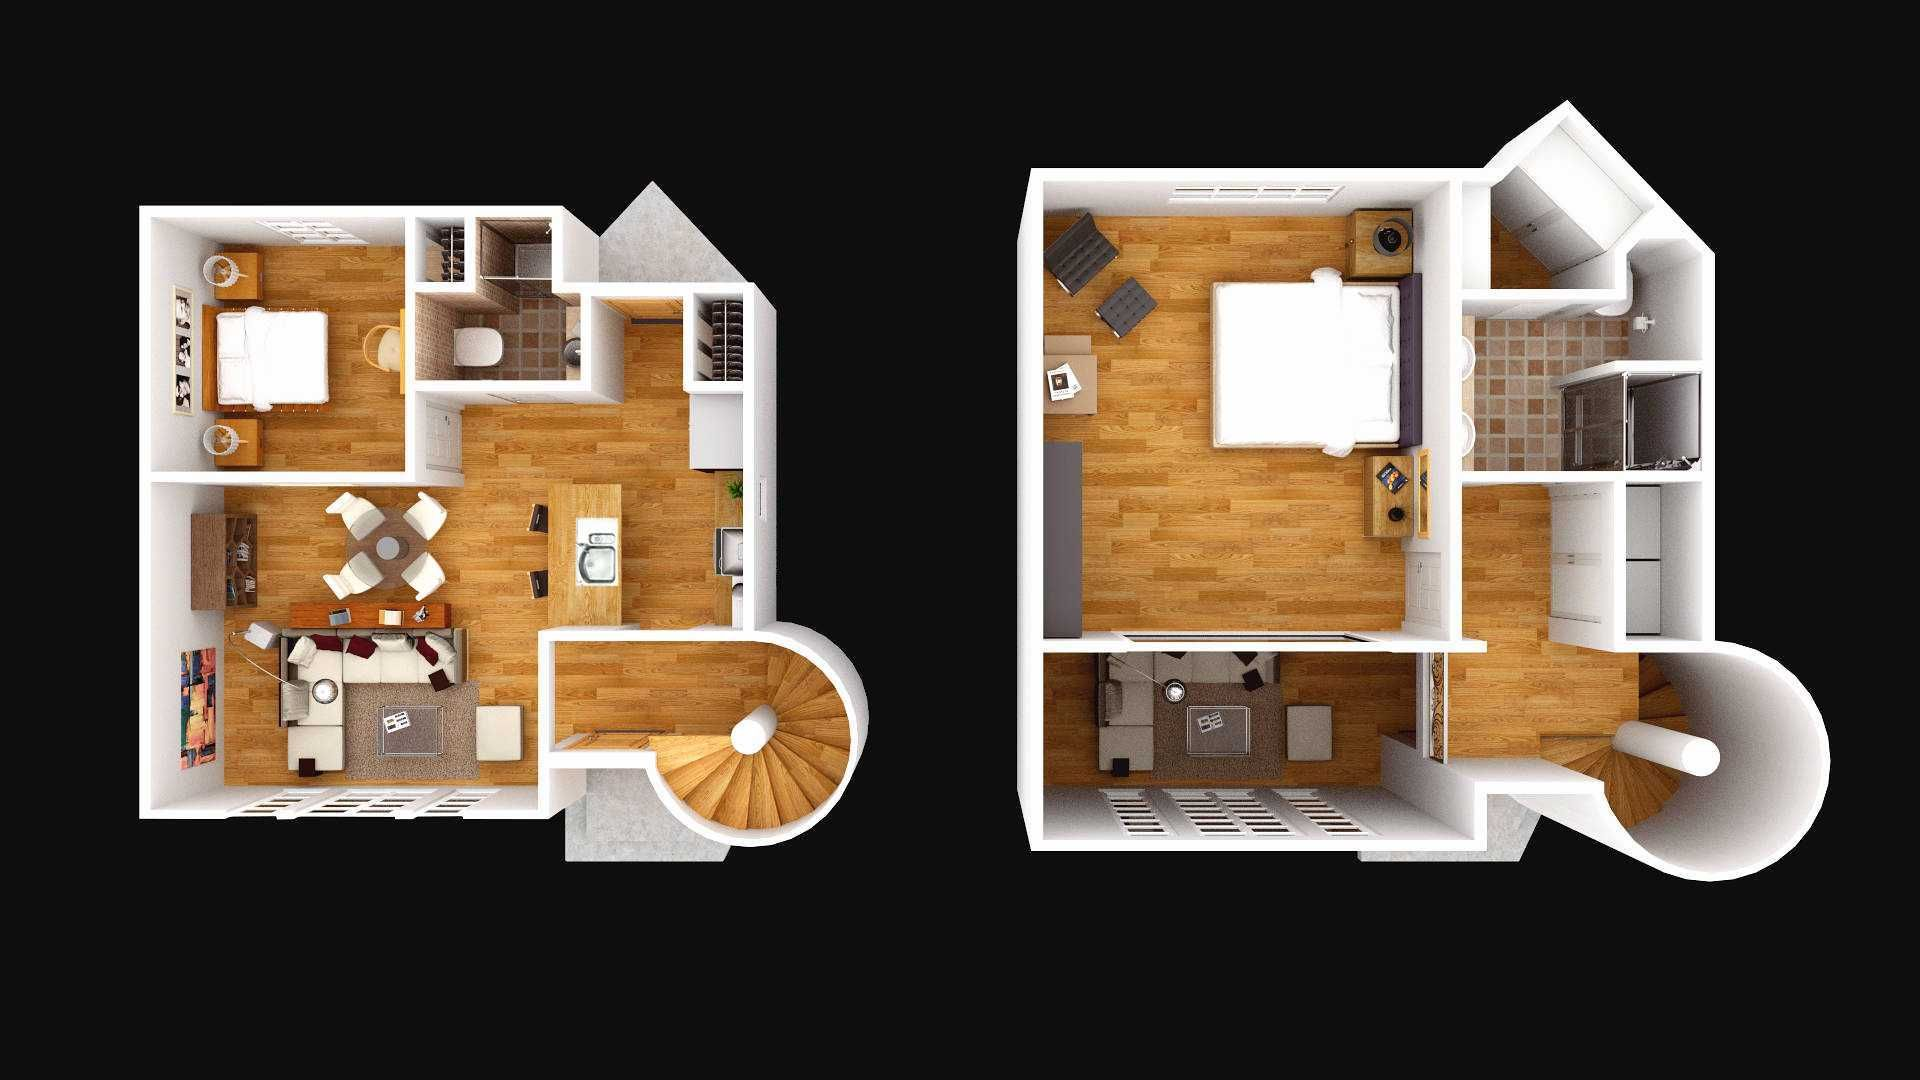 Terrace Simple 2 Storey House Design Philippines 2 Storey House Design Small House Design Plans House Construction Plan